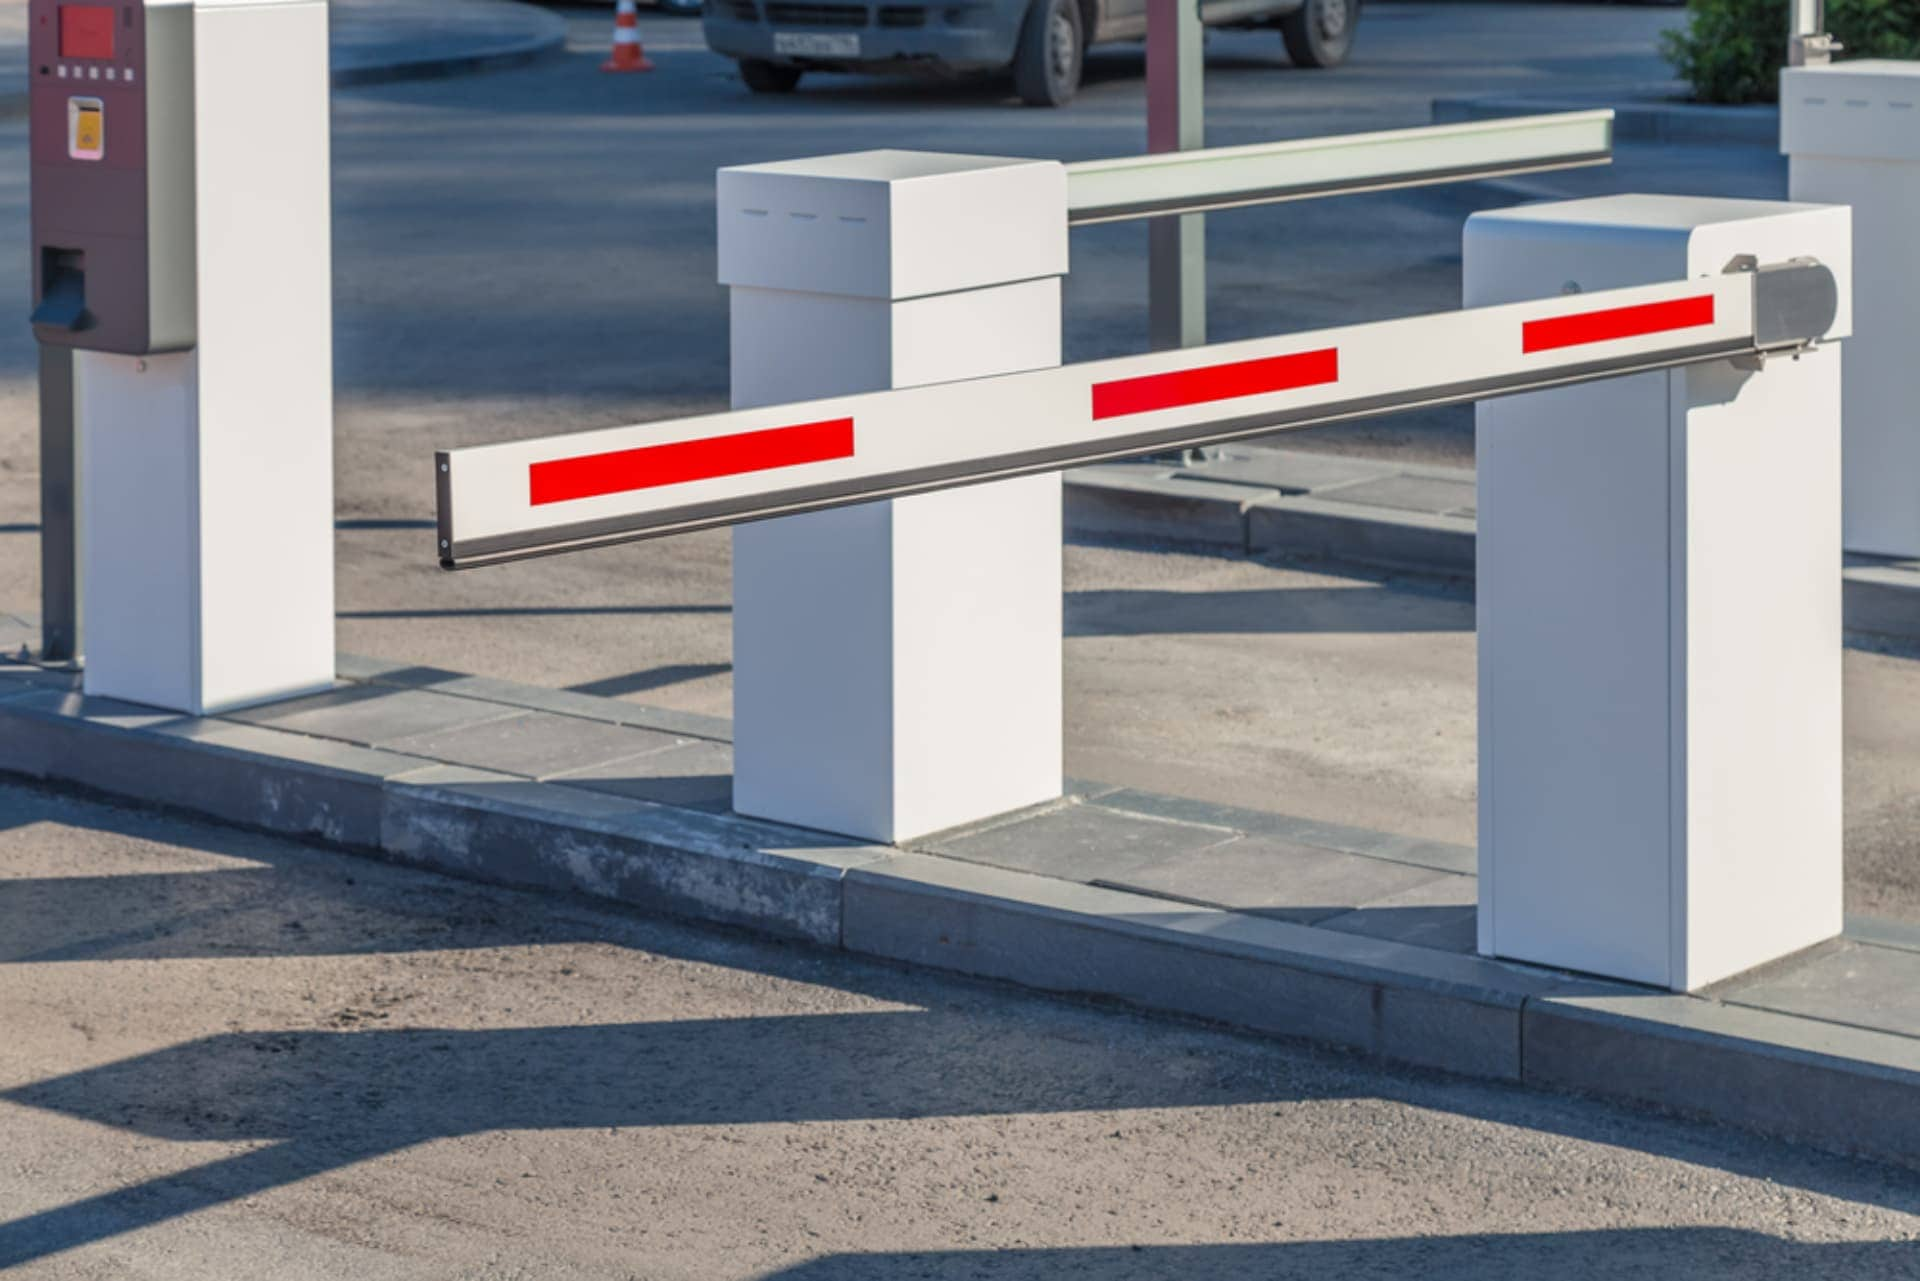 A barrier gate; a type of automatic gate